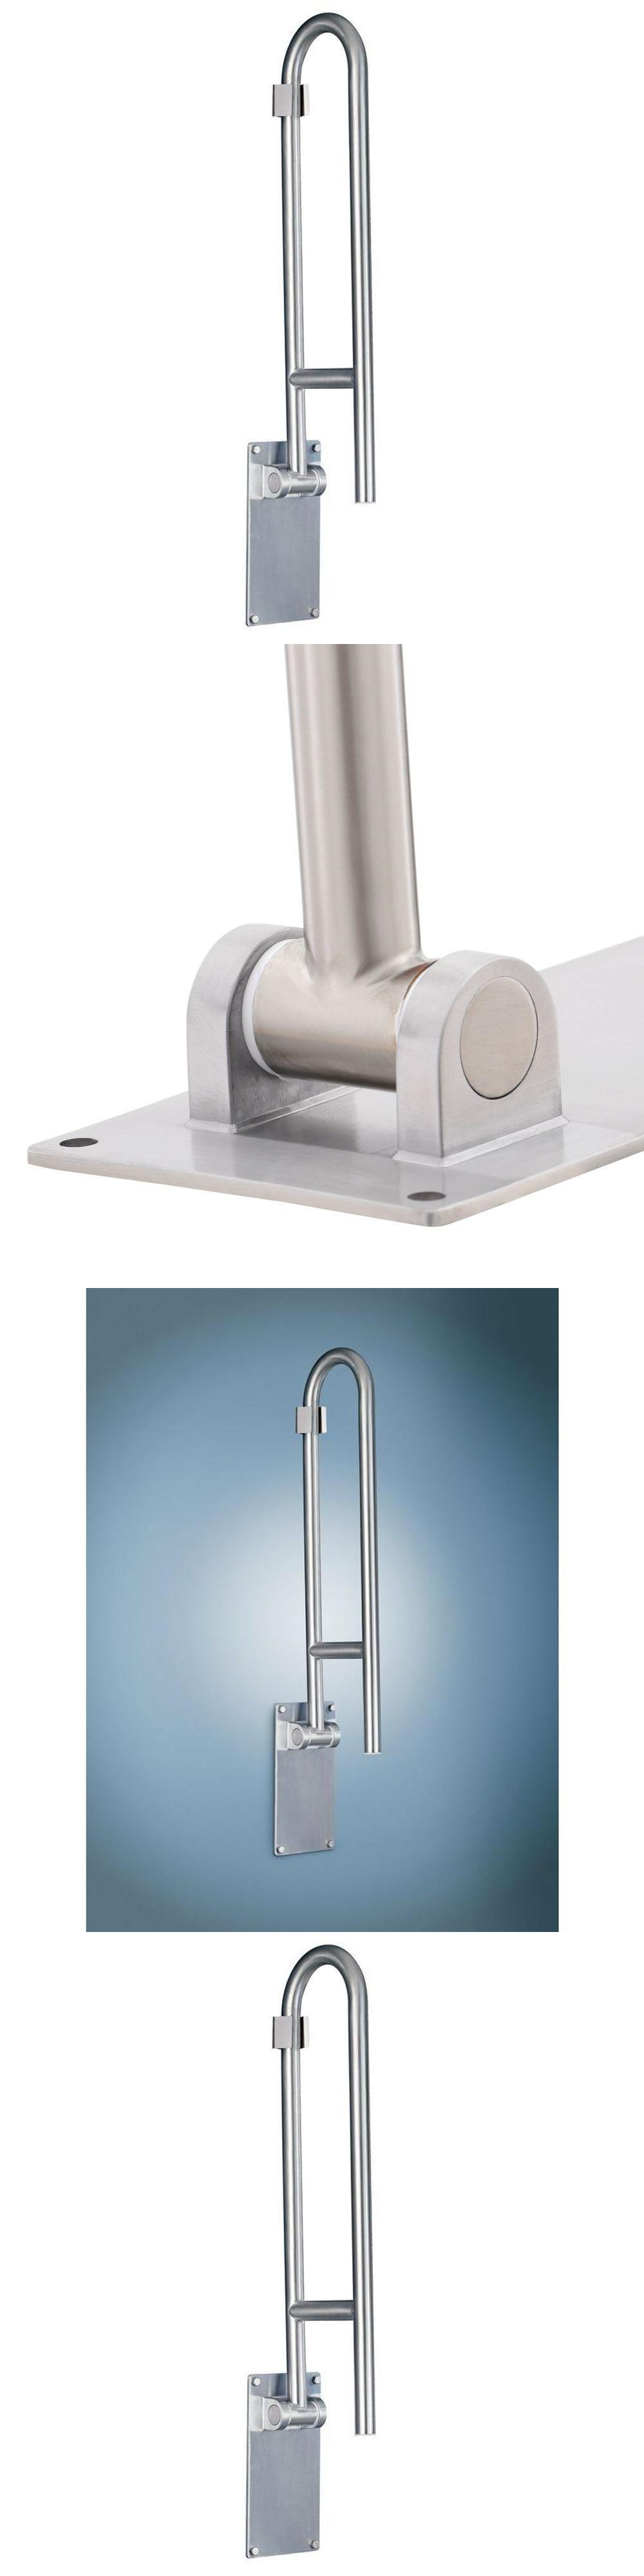 Other Accessibility Fixtures: Safer Grip Bath And Shower Handle Flip ...